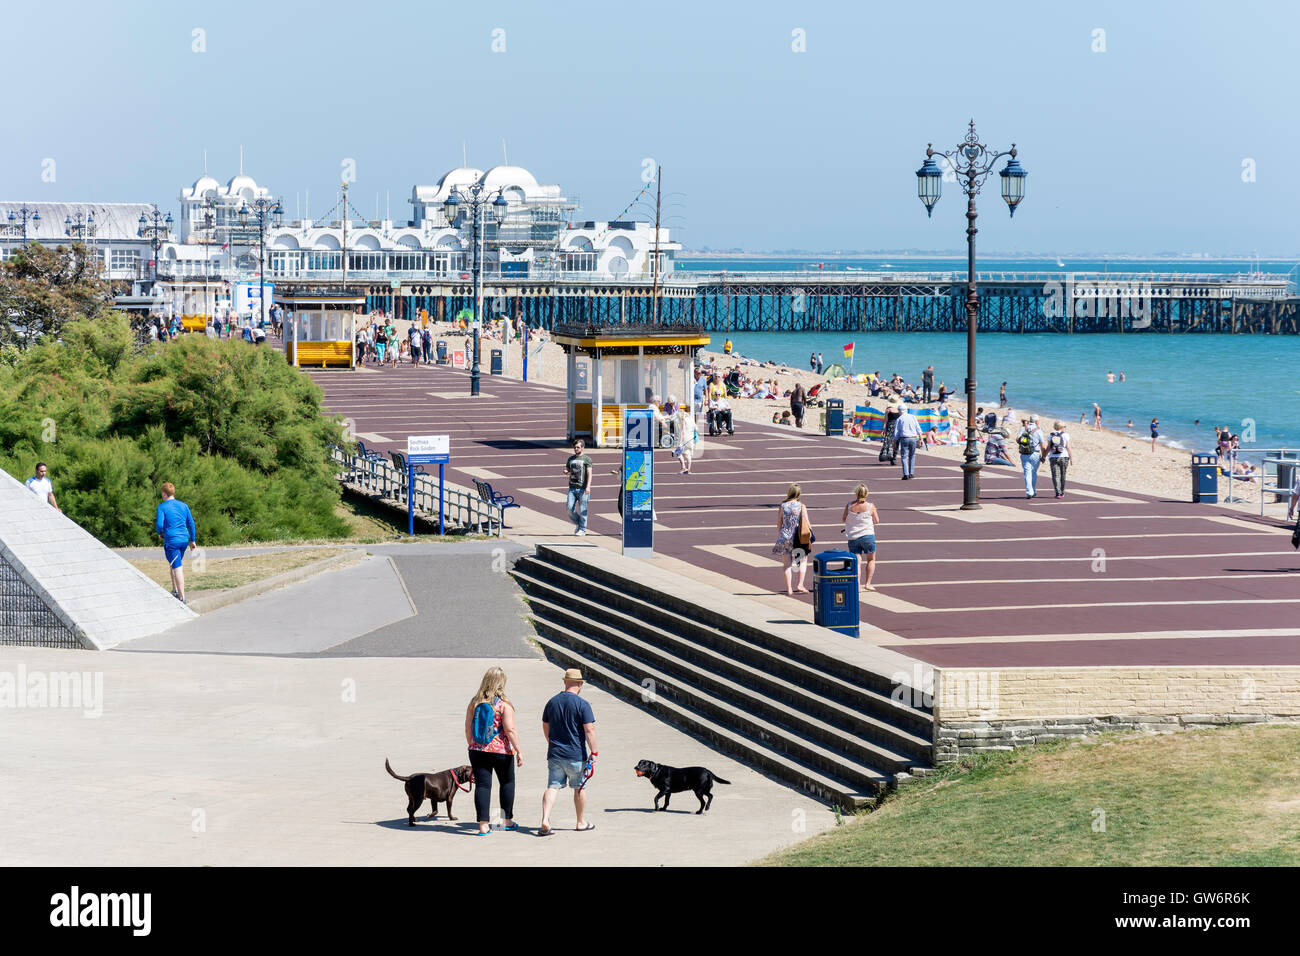 Seafront and South Parade Pier,Clarence Esplanade, Southsea, Portsmouth, Hampshire, England, United Kingdom Stock Photo